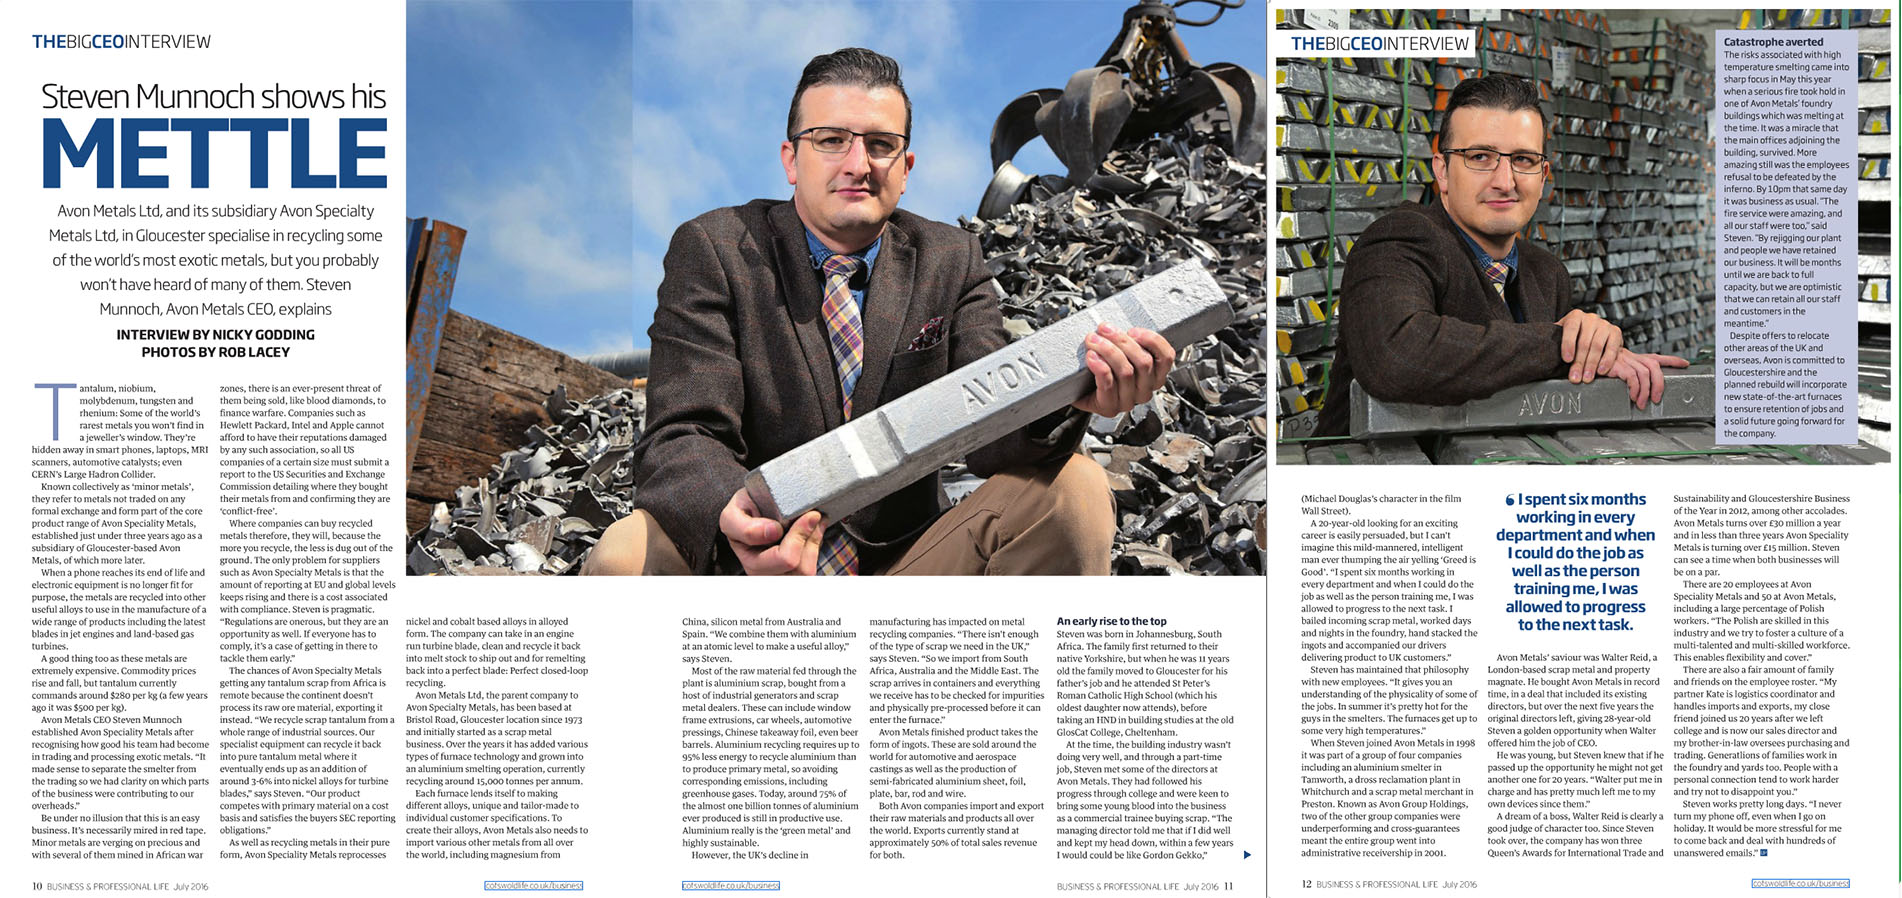 cutting from Business & Professional Magazine showing Avon Metals CEO Steven Munnock